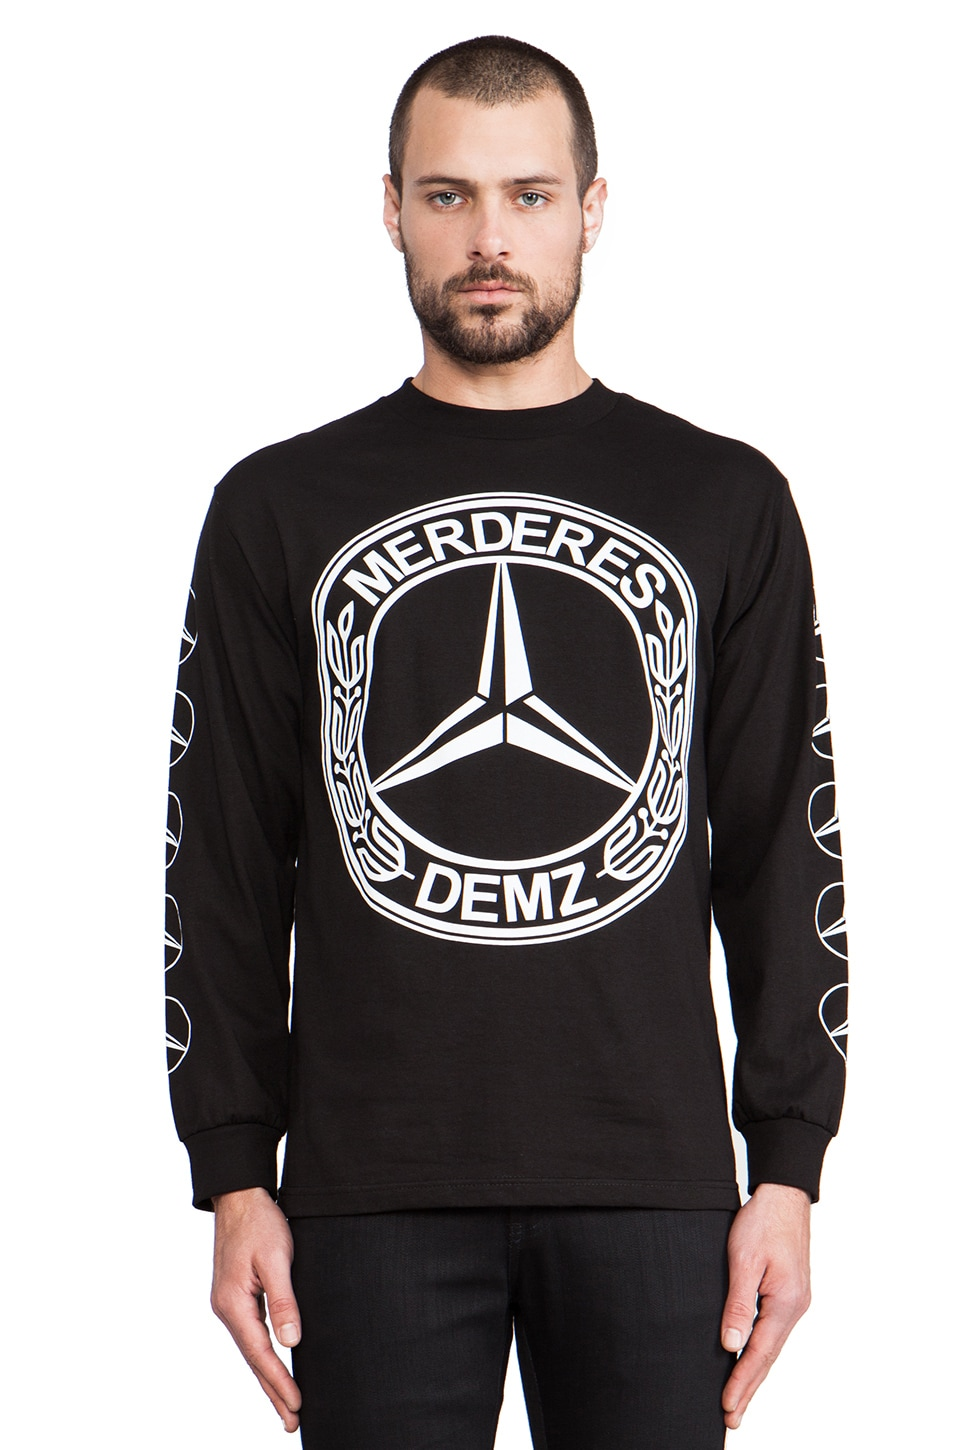 1992 Demz Long Sleeve Tee in Black